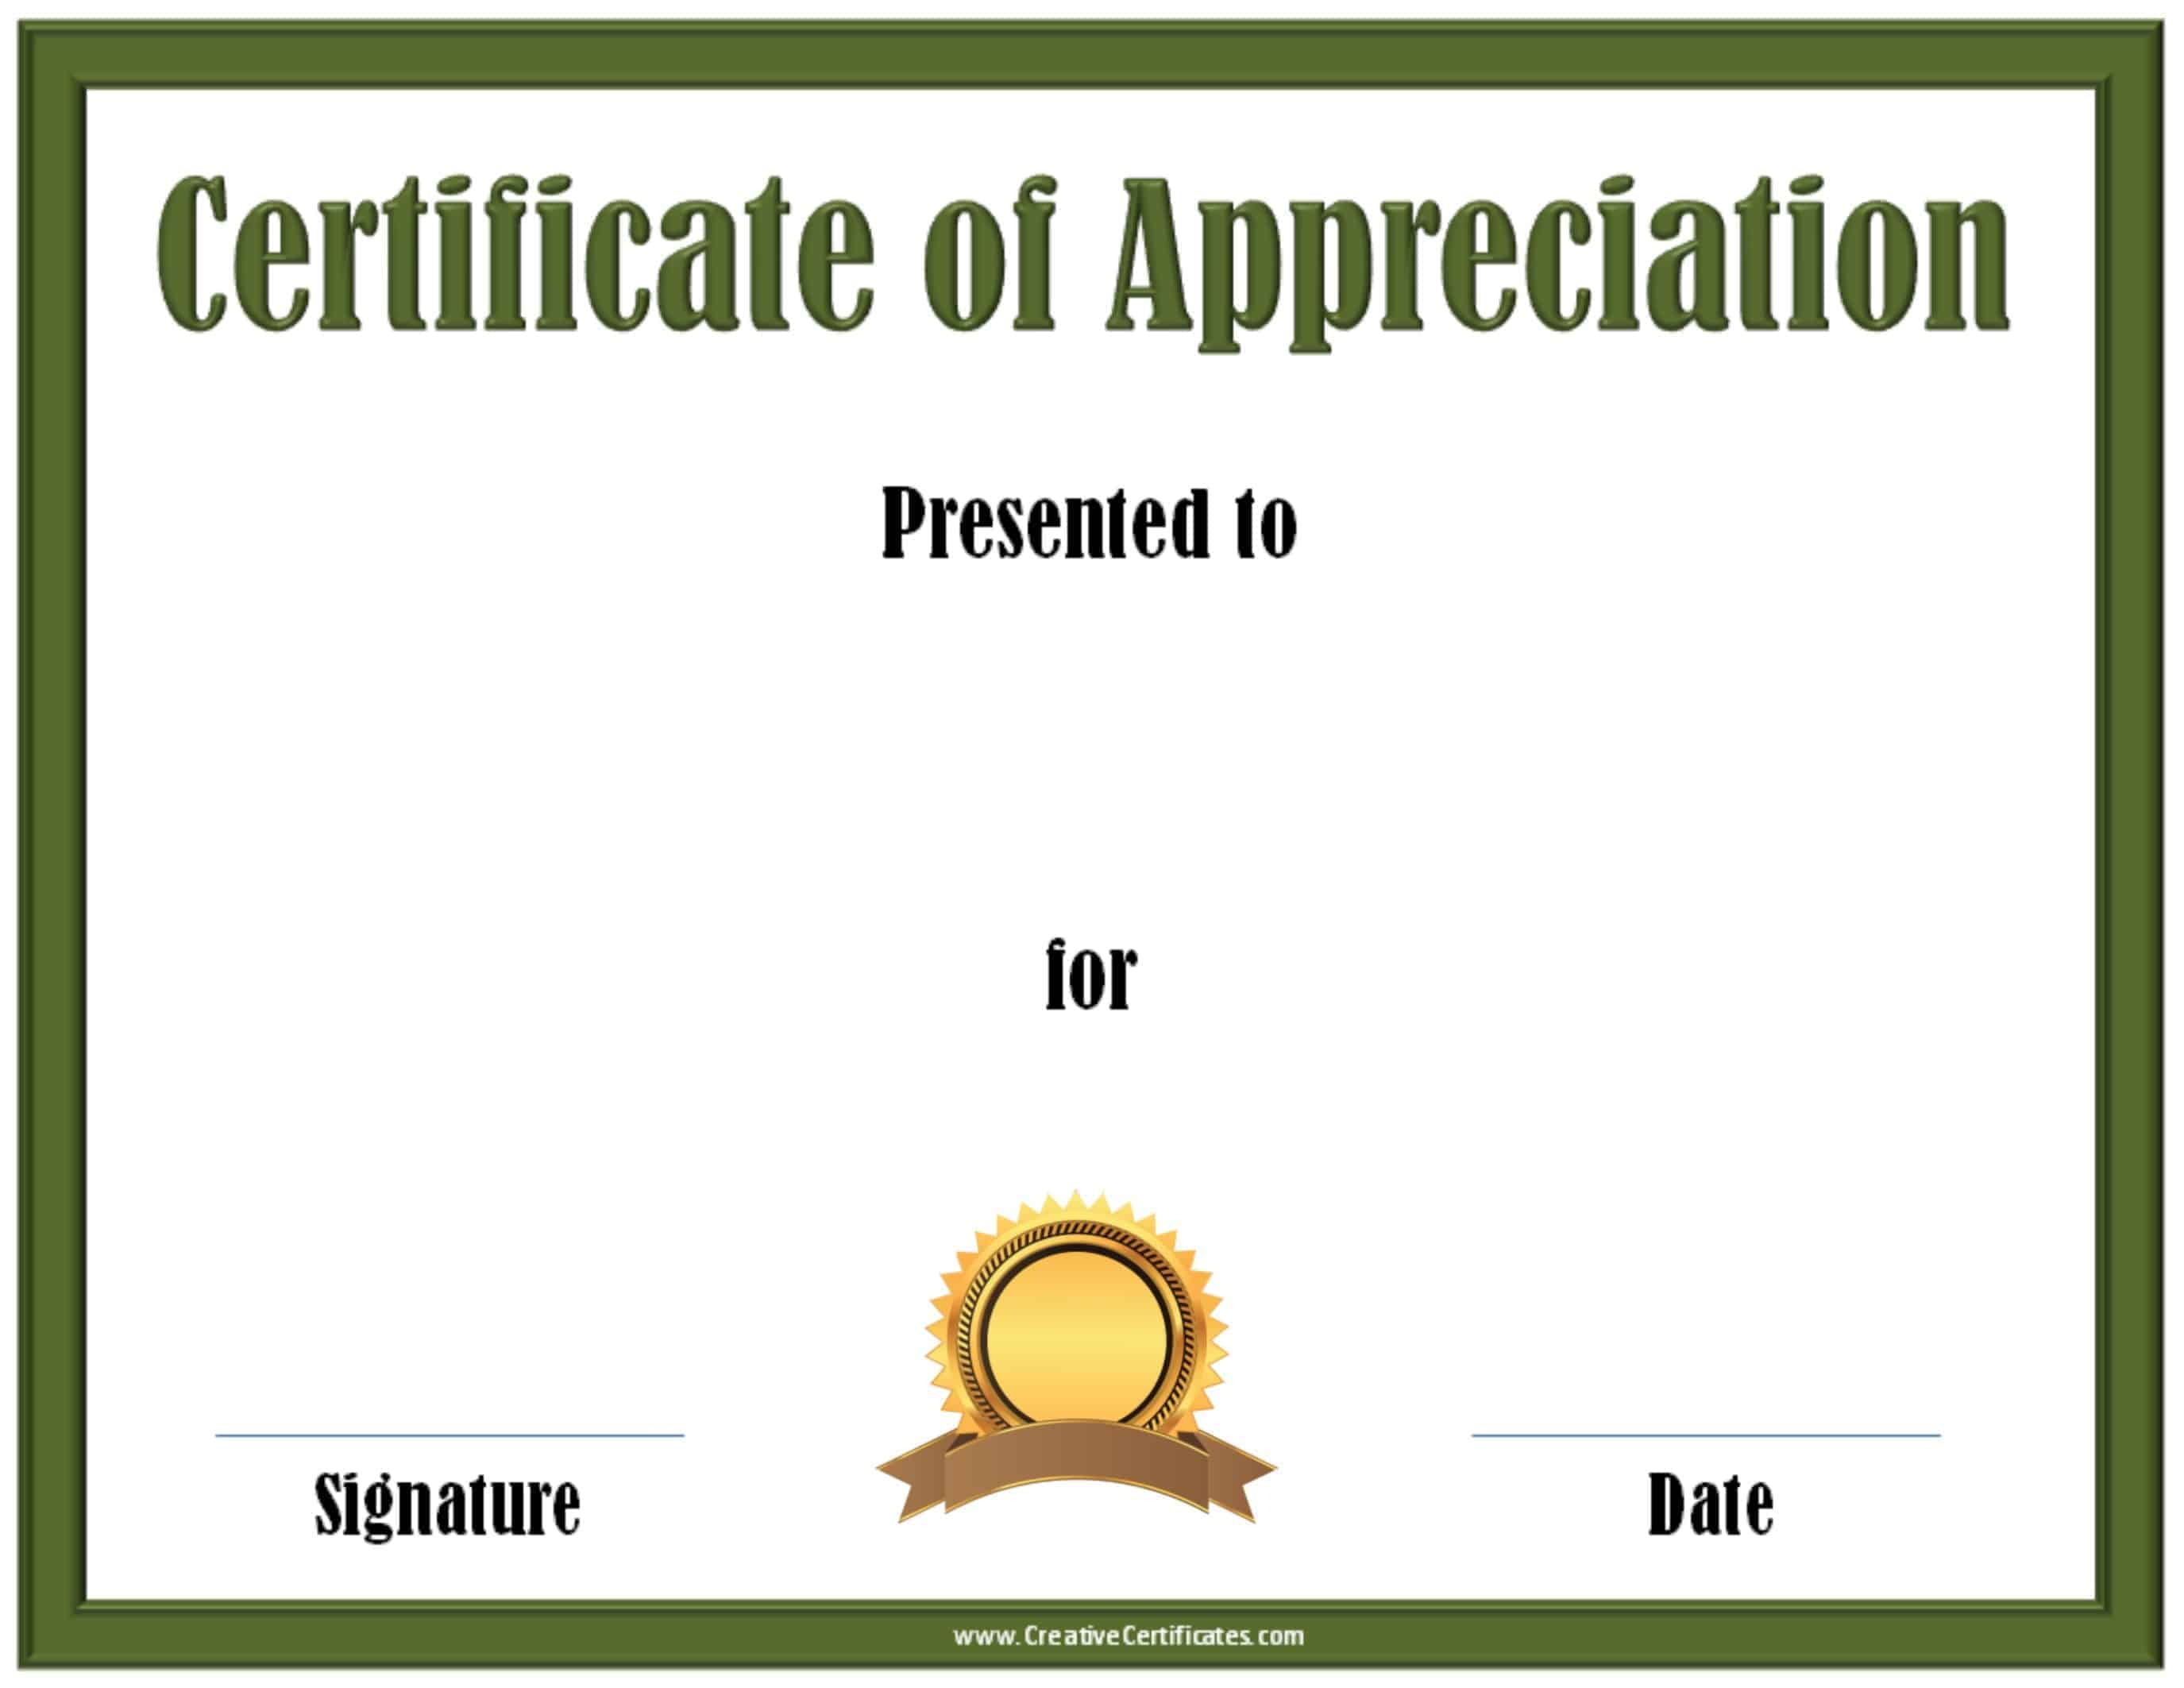 Free Editable Certificate of Appreciation | Customize ...